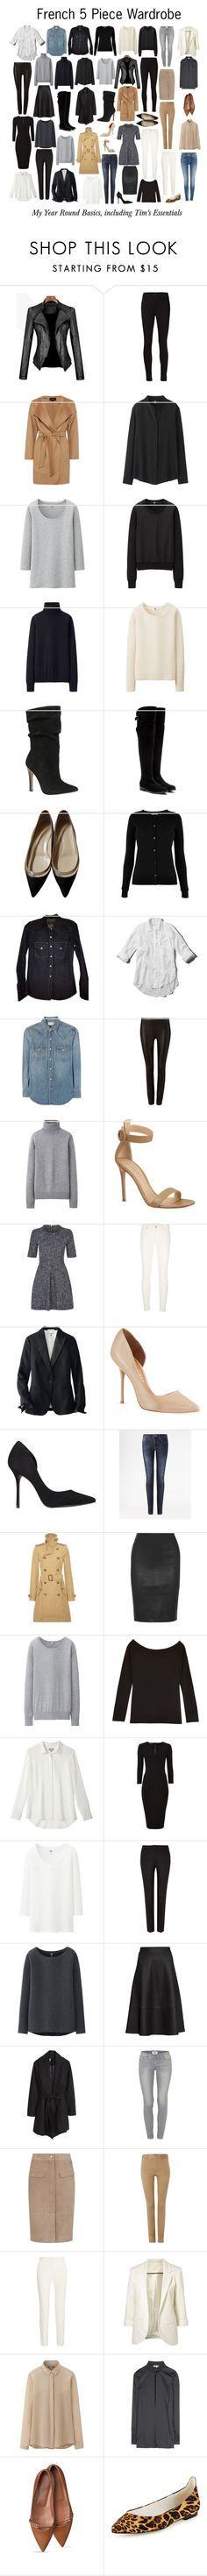 """""""French 5 Piece Wardrobe - Basics"""" by charlotte-mcfarlane ❤ liked on Polyvore featuring J Brand, Jaeger, Uniqlo, ALDO, Dolce&Gabbana, Christian Louboutin, Oasis, J.Crew, Abercrombie & Fitch and Yves Saint Laurent"""